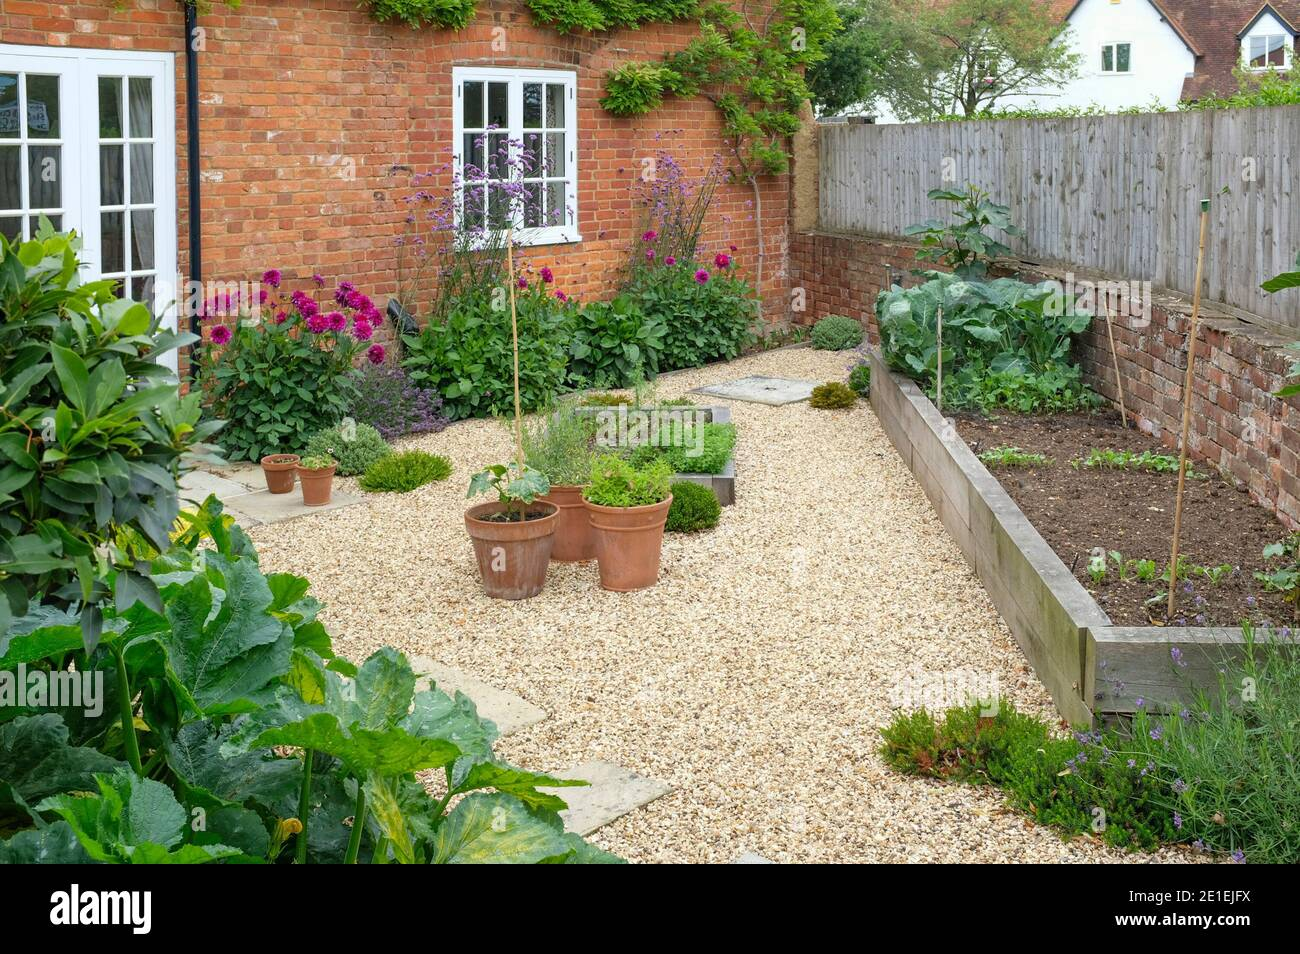 https www alamy com garden of a victorian english house uk gravel and oak sleeper raised beds with flowers and vegetables image396775006 html